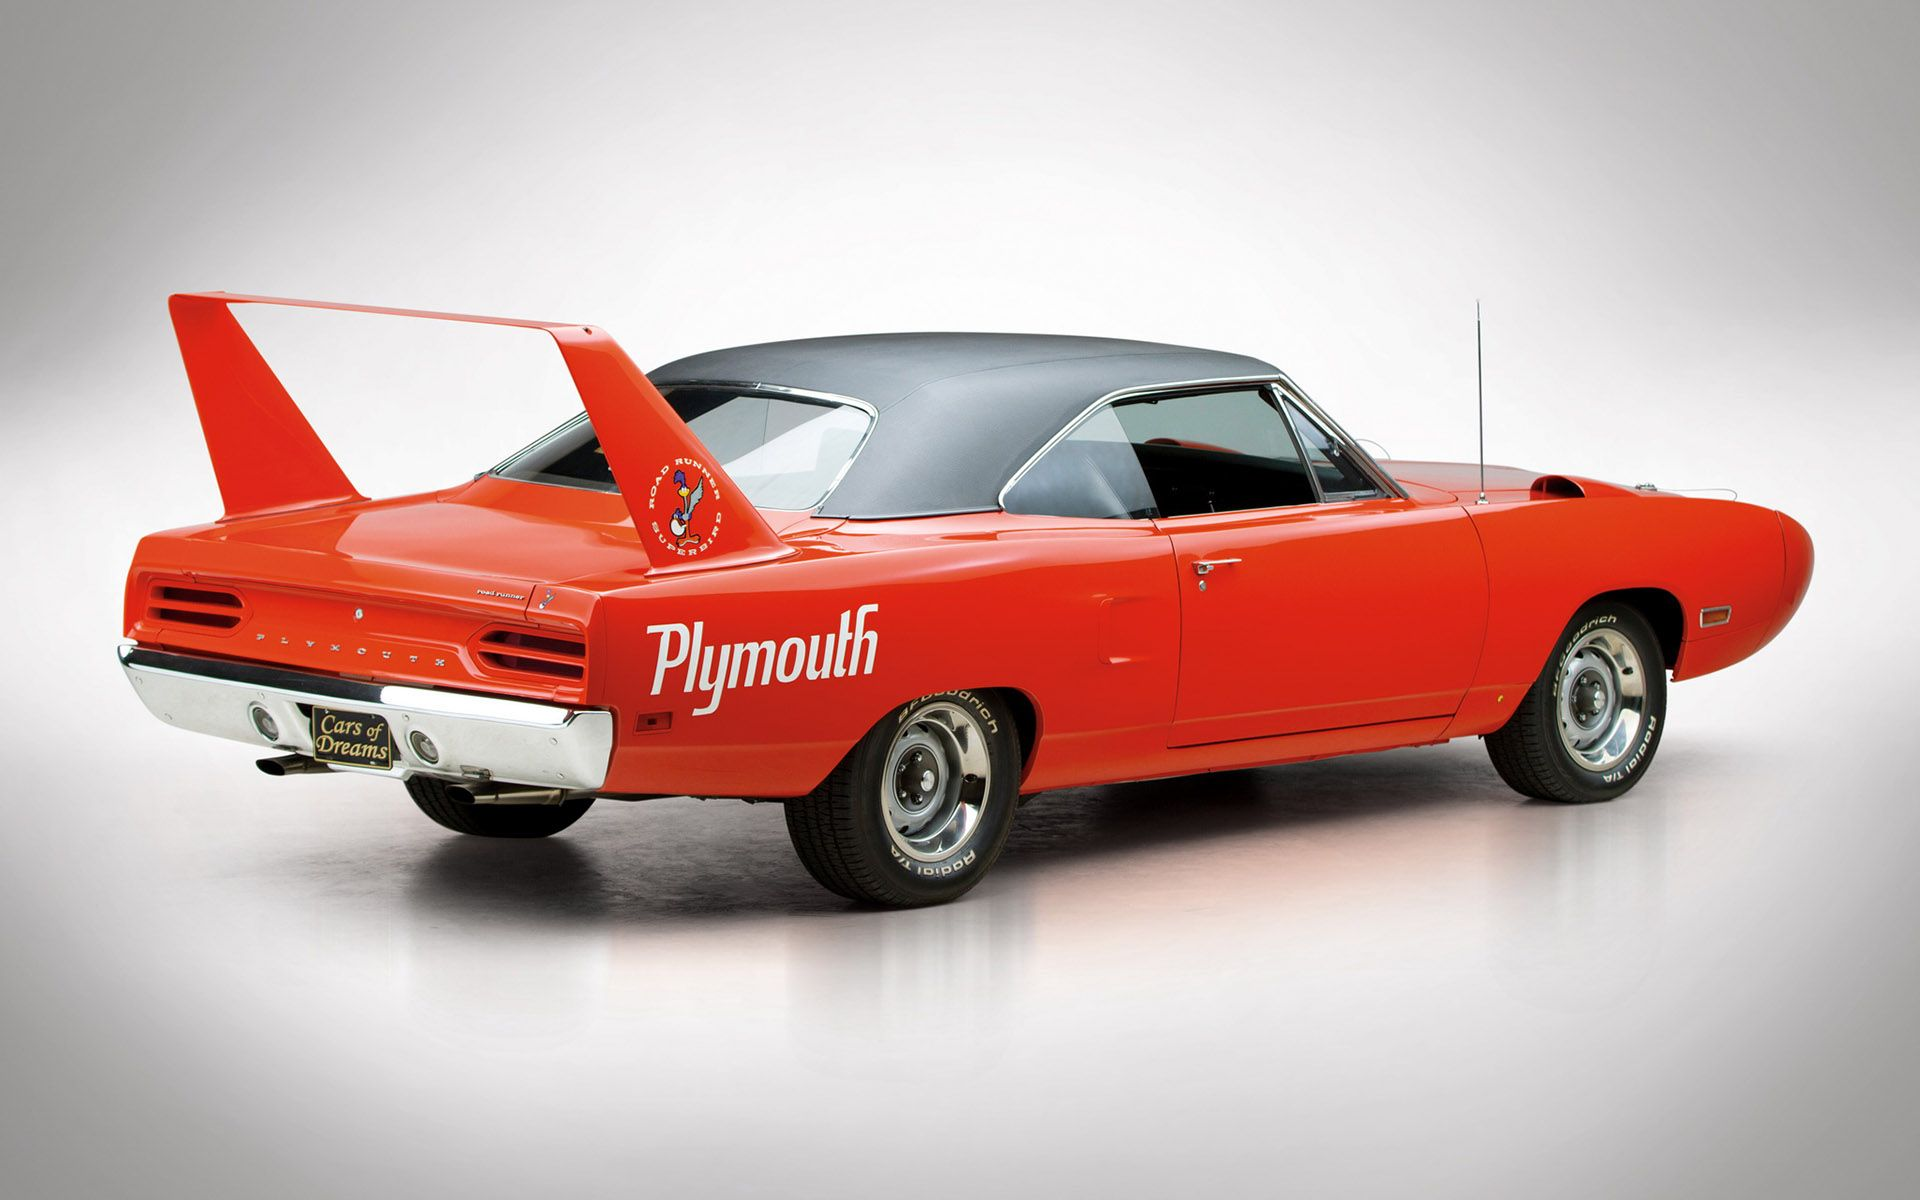 Classic Plymouth Muscle Cars For Desktop by size: Handphone/Tablet ...